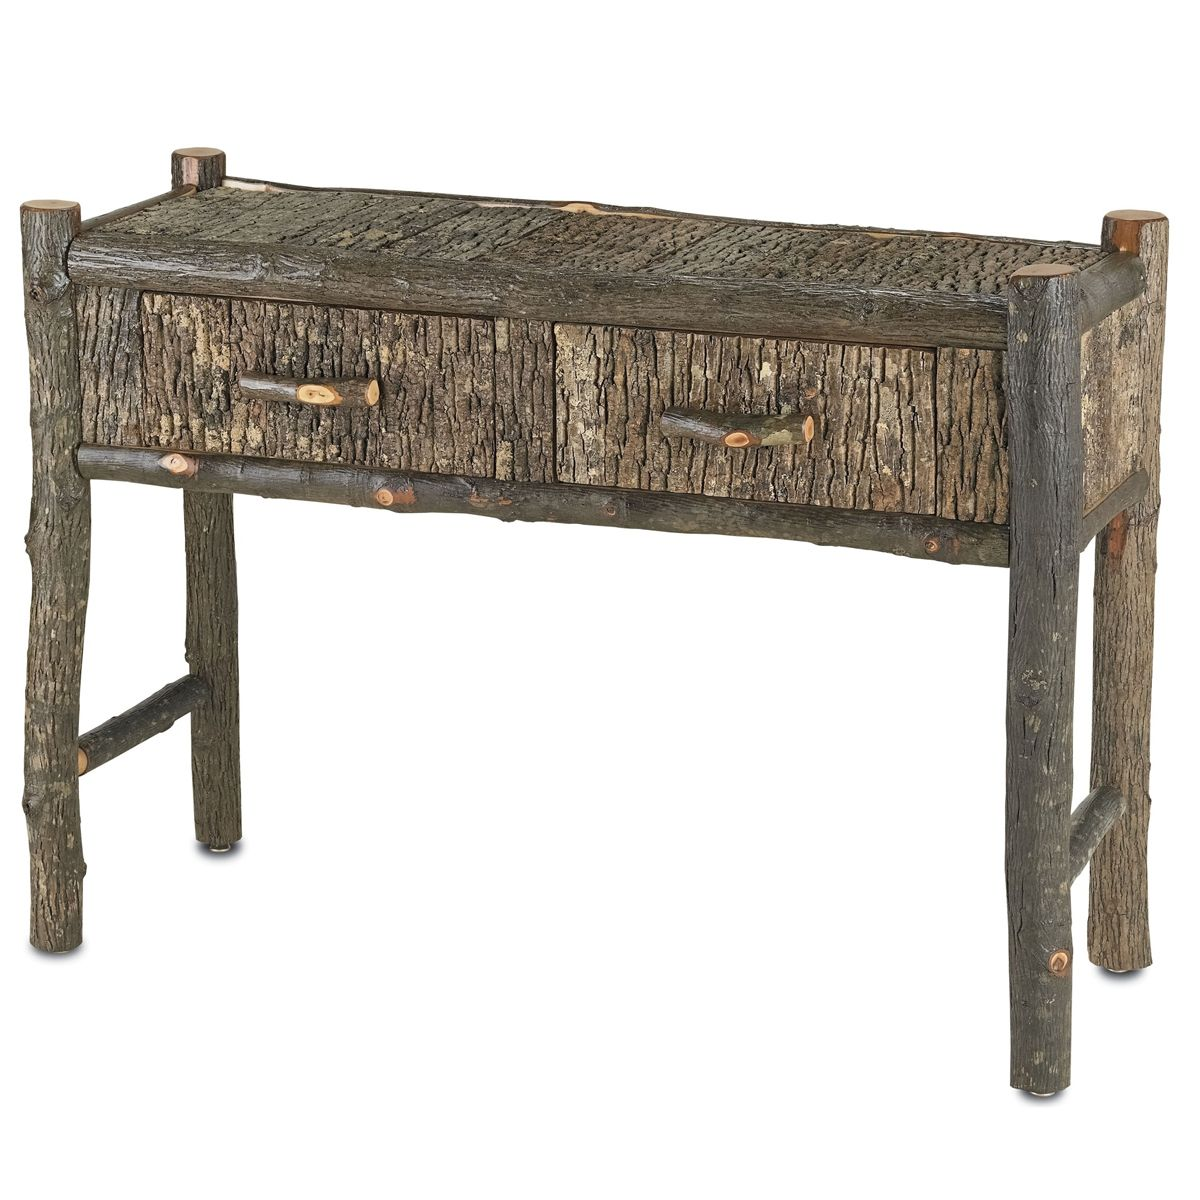 Hickory Wood Console Table Rustic Retreat rusticretreat